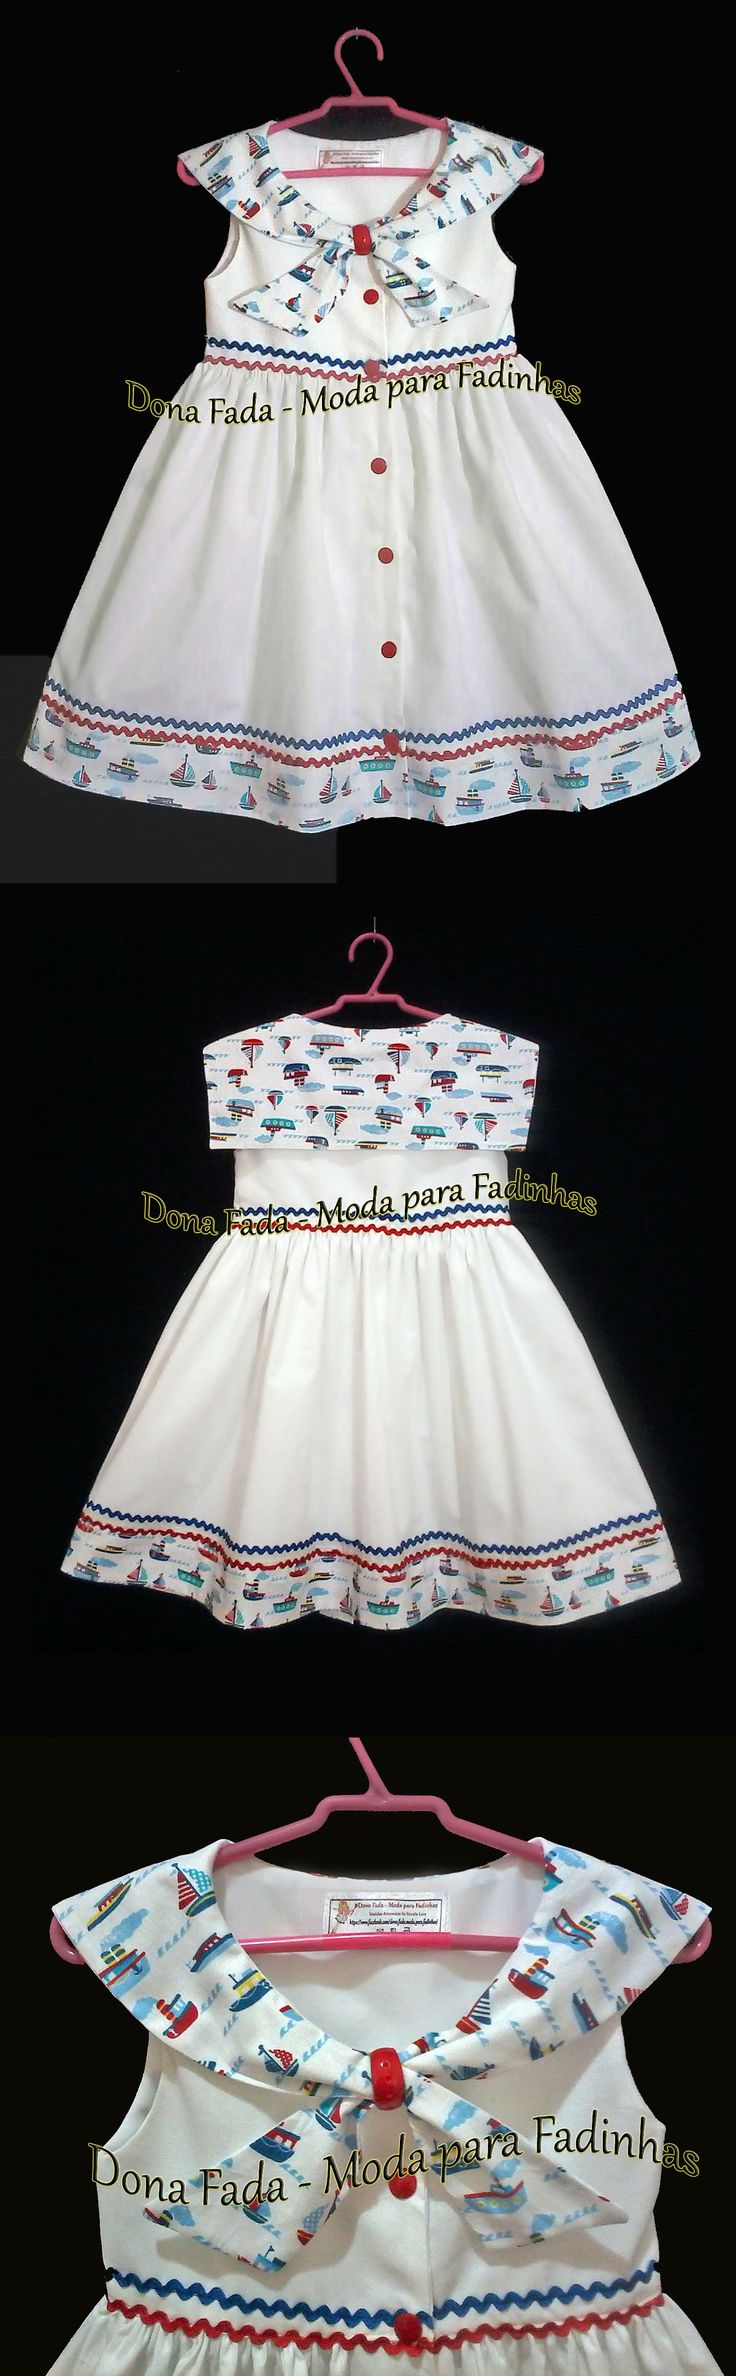 Vestido Marinheiro - 2e    anos_______________baby - infant - toddler - kids - clothes for girls - - - https://www.facebook.co m/dona.fada.moda.para.fadinhas/